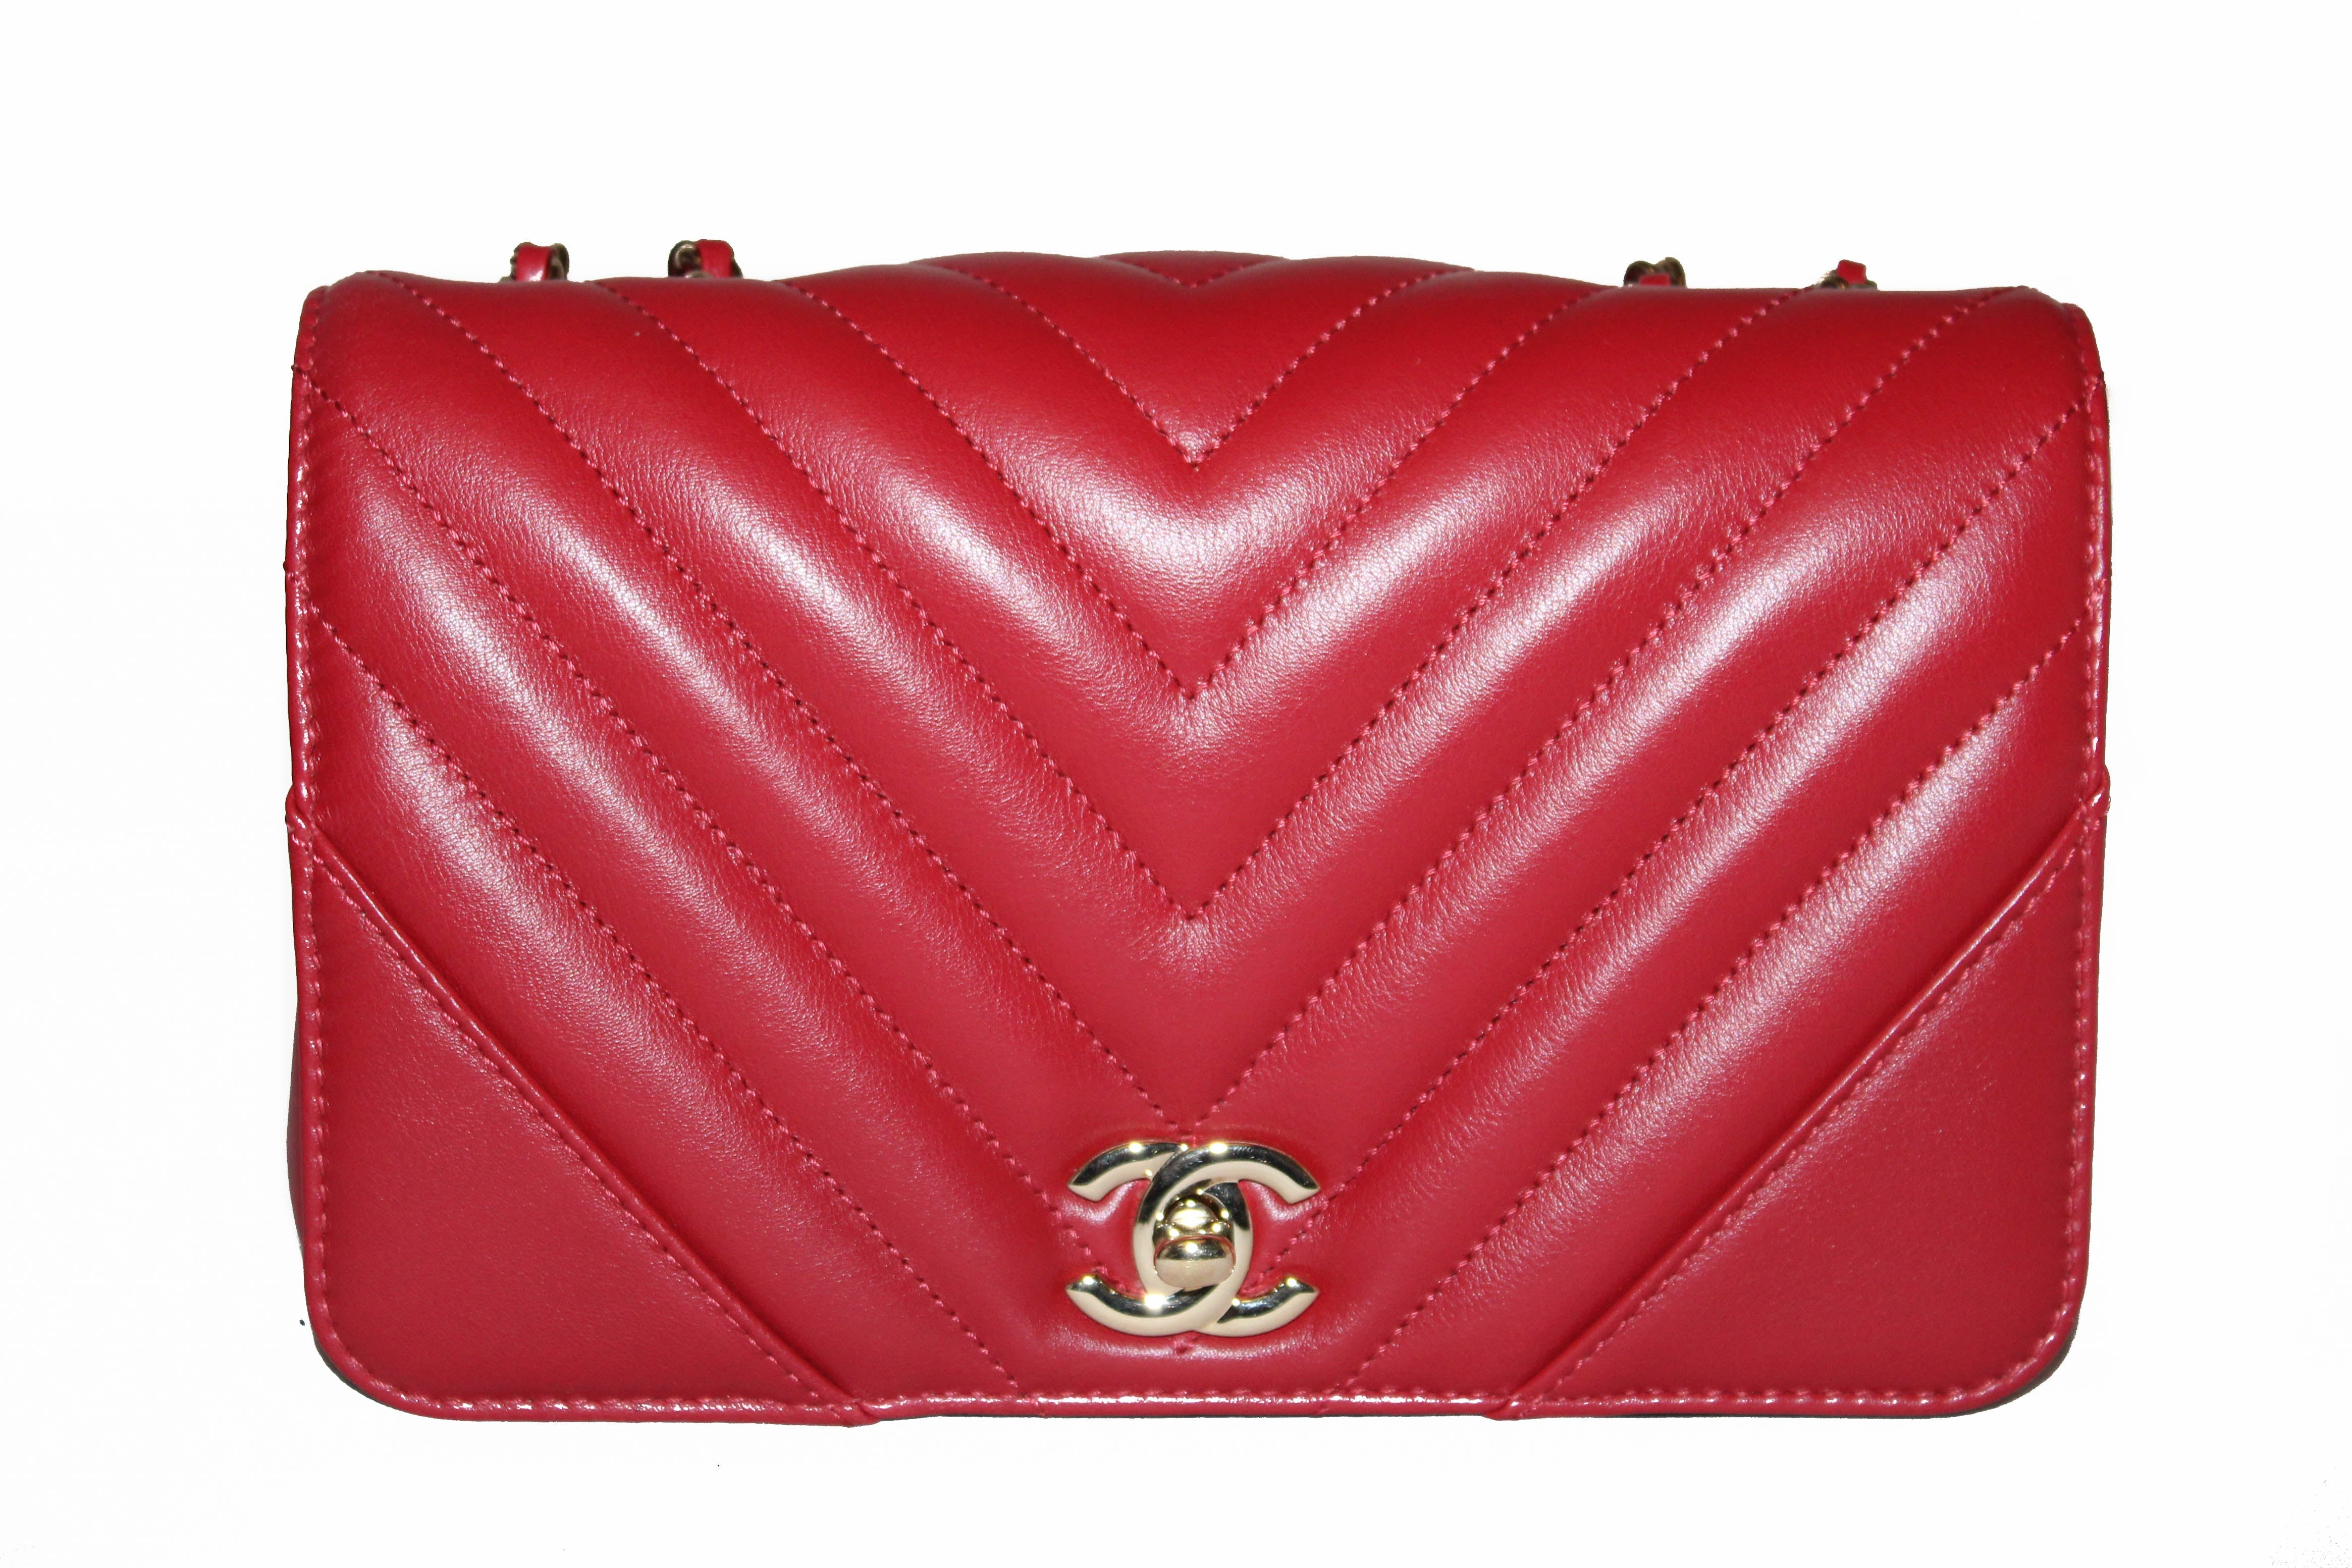 Authentic Chanel Red Chevron Lambskin Mini Flap Leather Bag